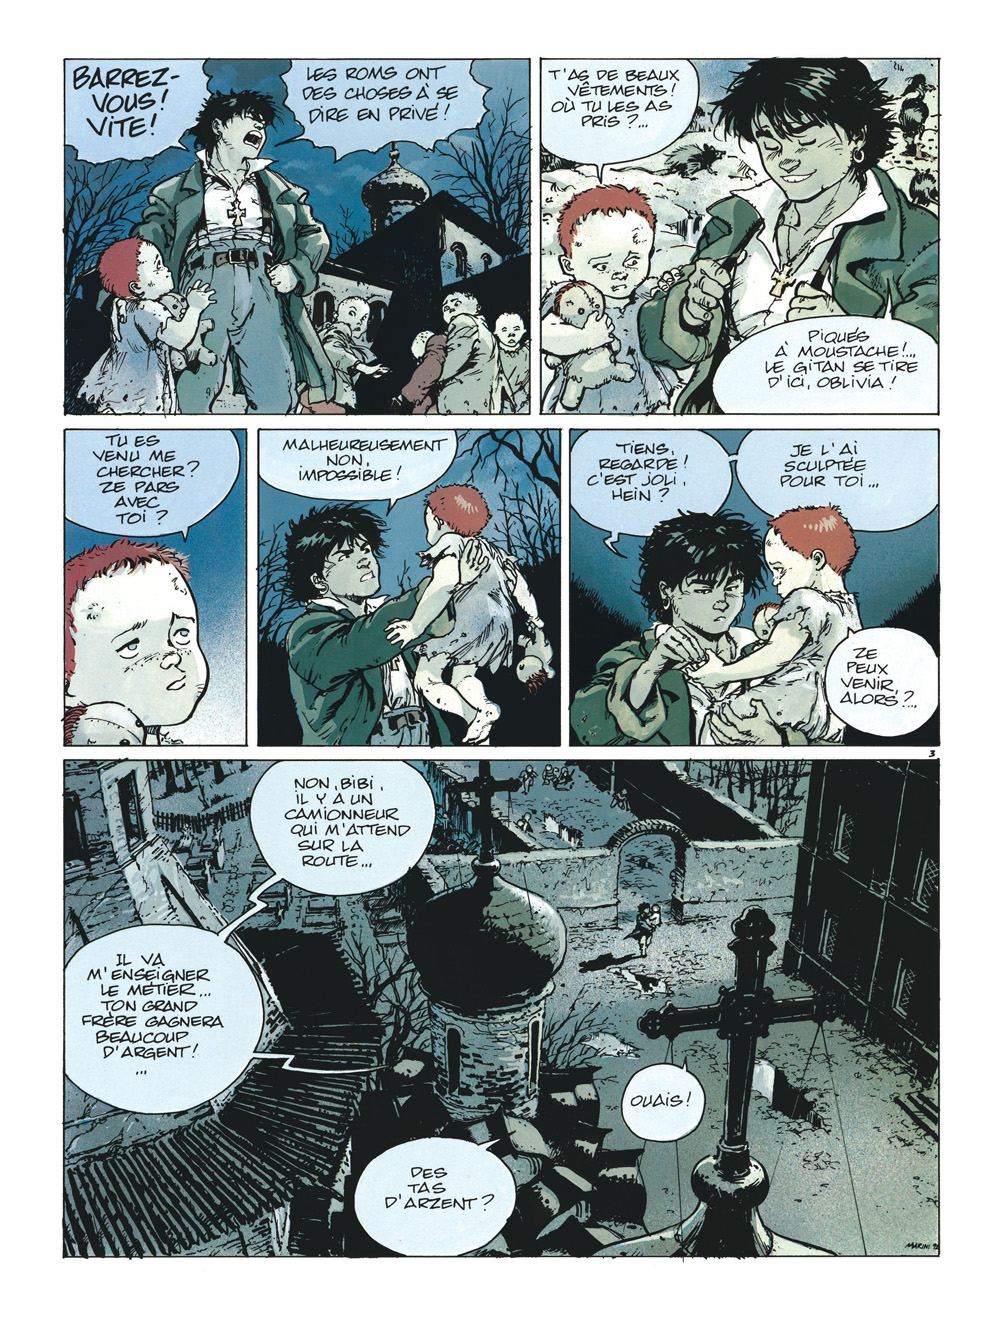 gipsy intégrale planche 3